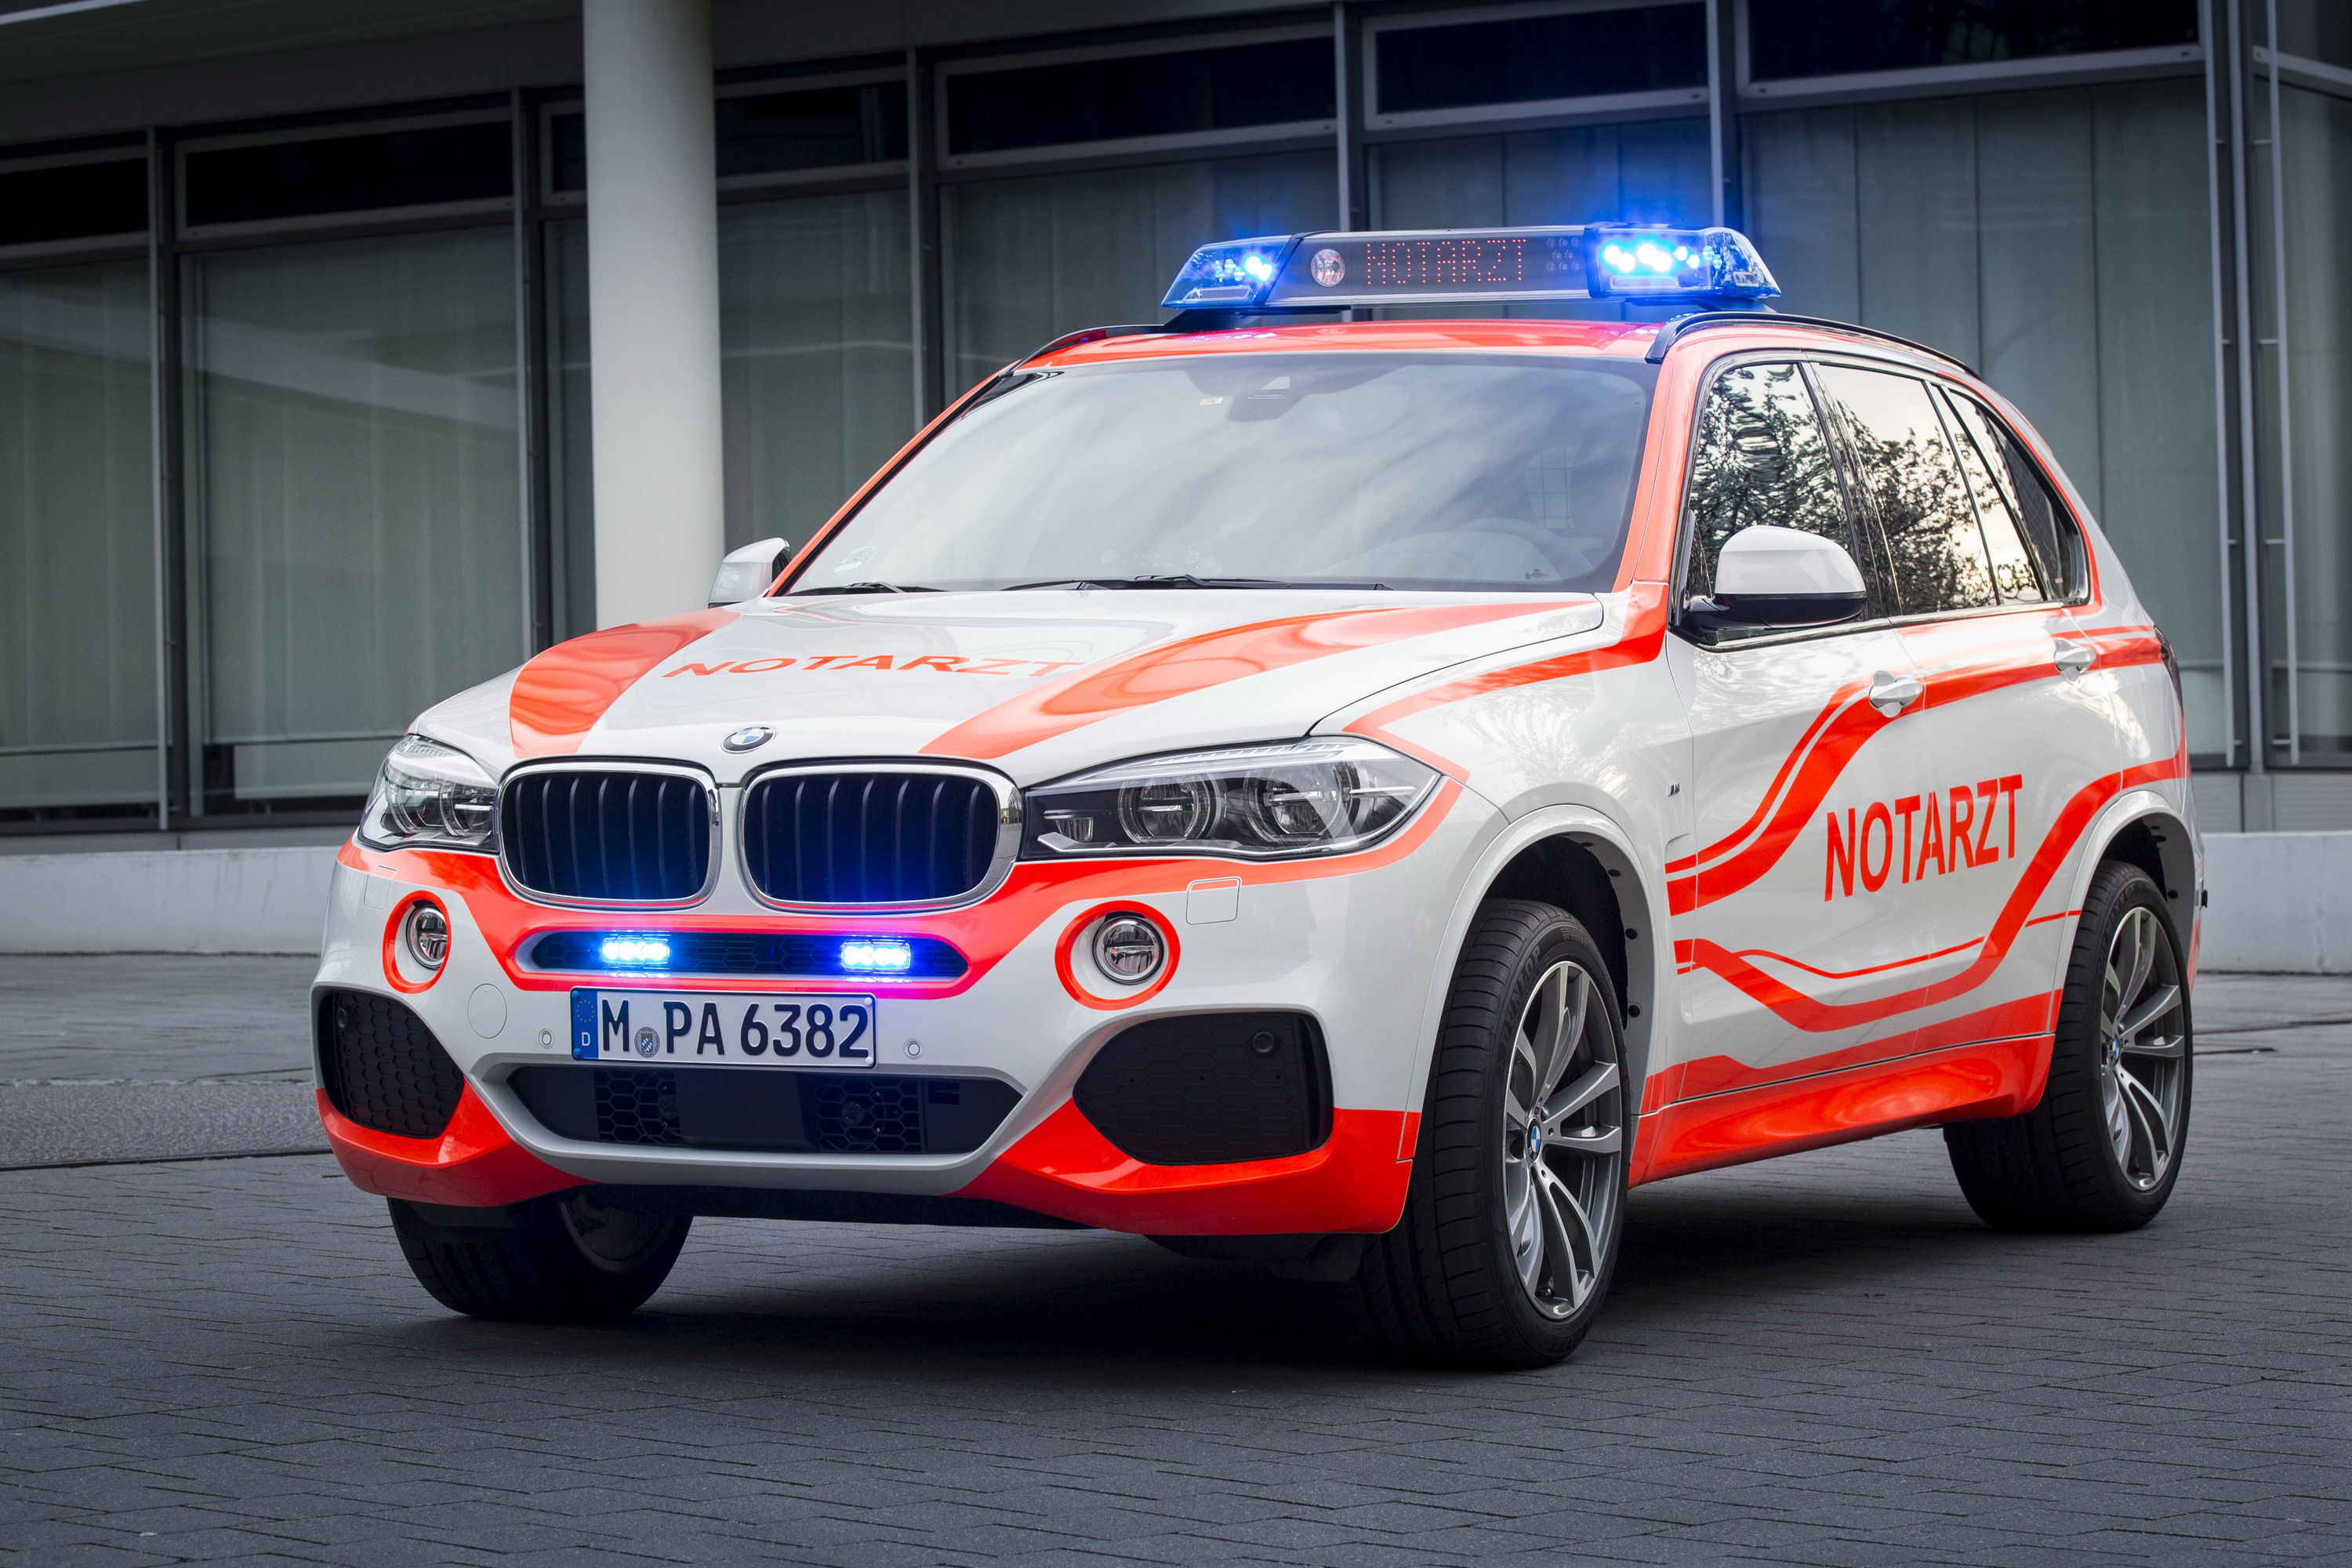 2014 Bmw X5 Xdrive30d Paramedic Vehicle Review Top Speed